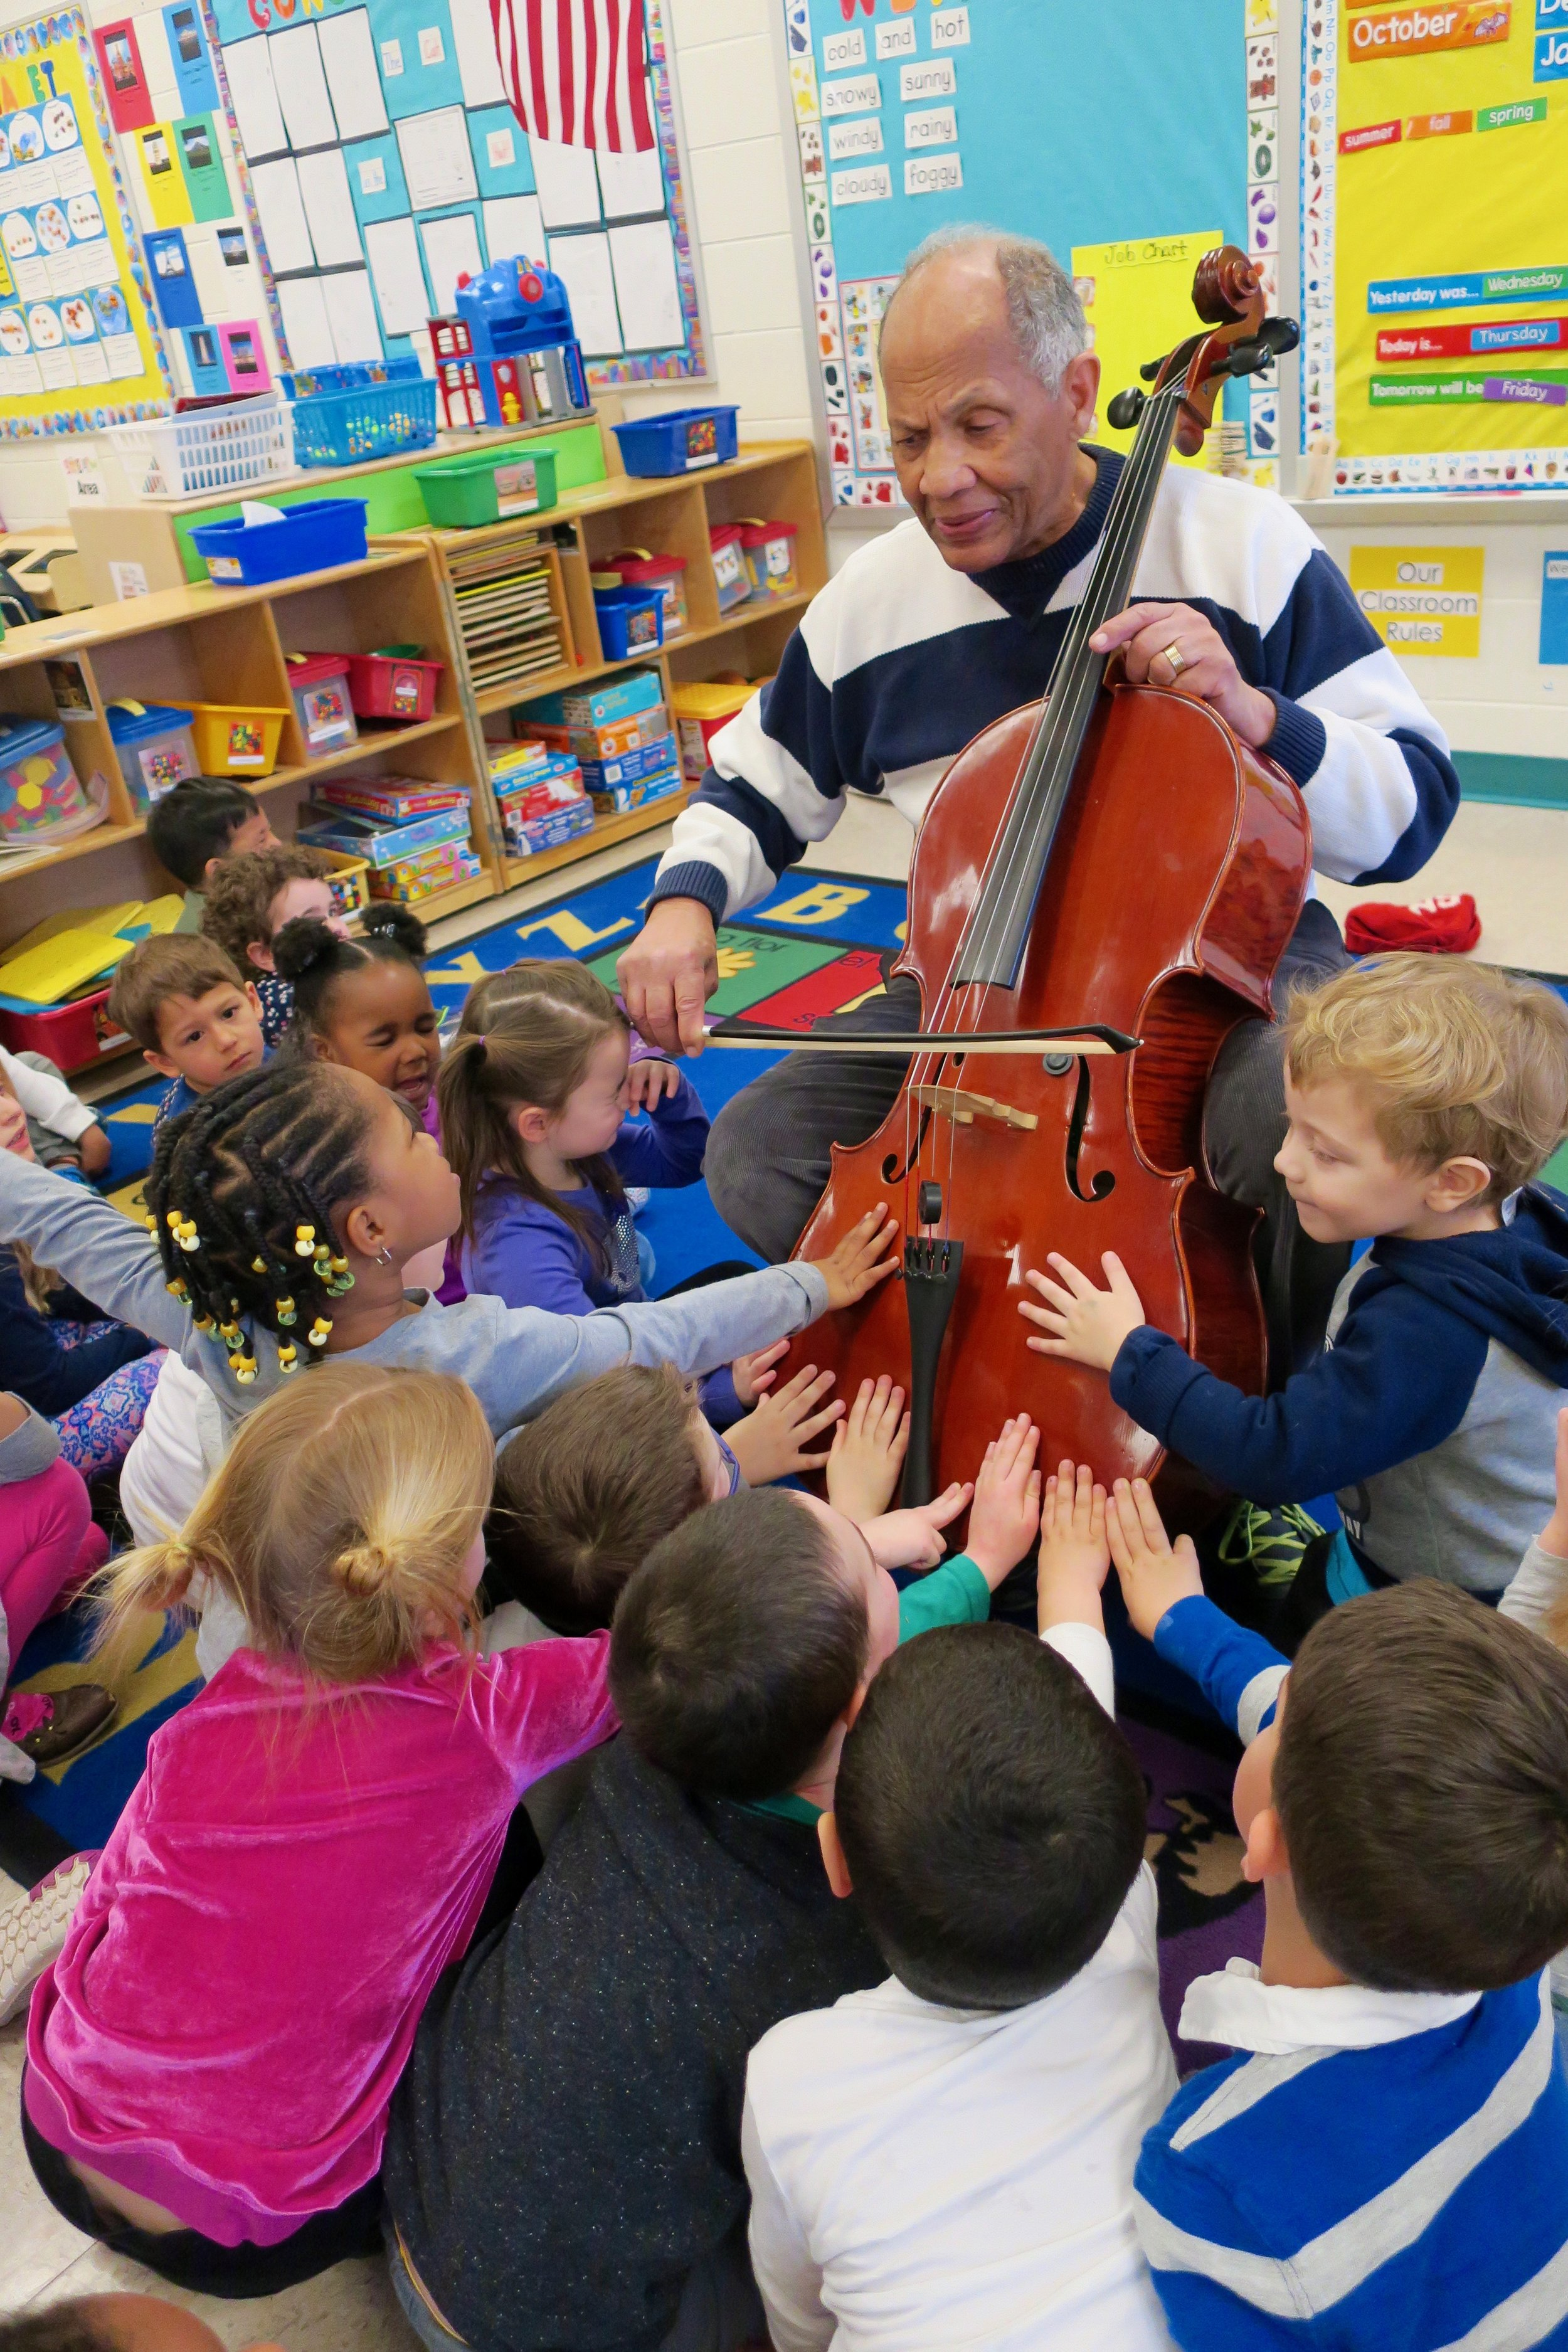 DC Strings Member Ray Pitts shares a moment with local elementary school children - sharing the joys of music and introducing them to the cello!